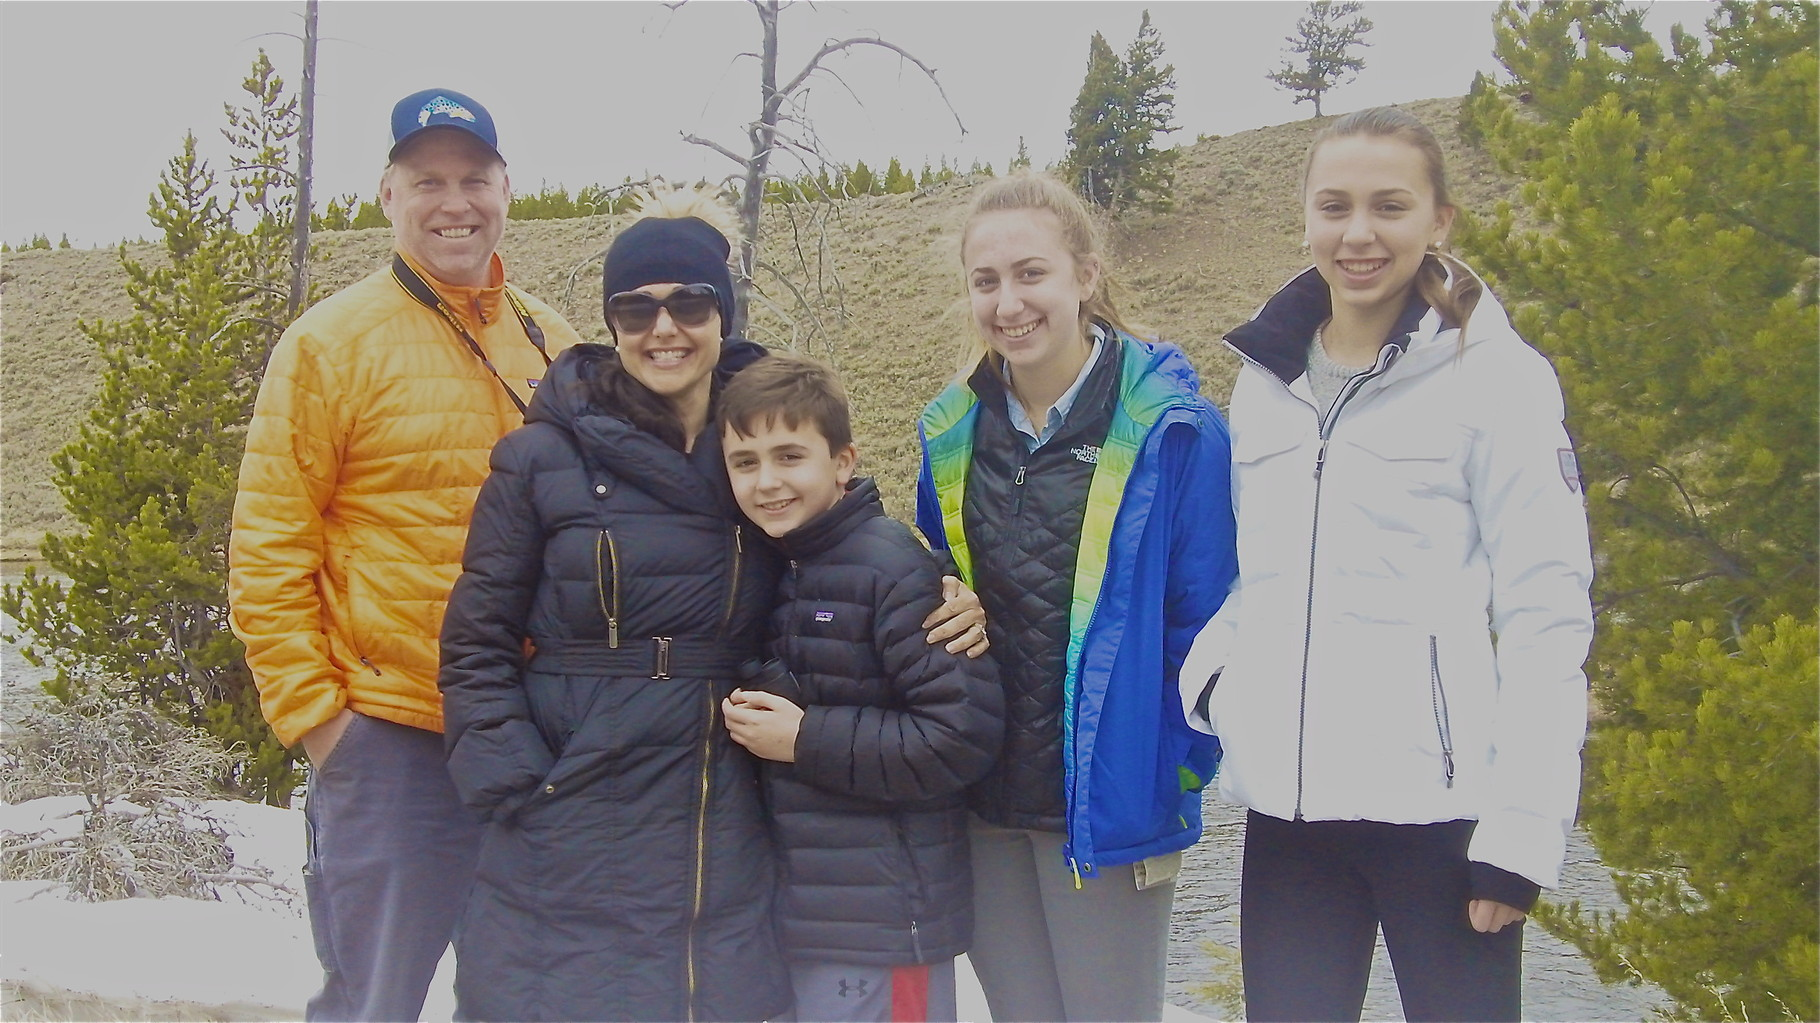 Stuart Jr., Allie, Stuart 3d, Gabby, and Emma Kagel at Yellowstone